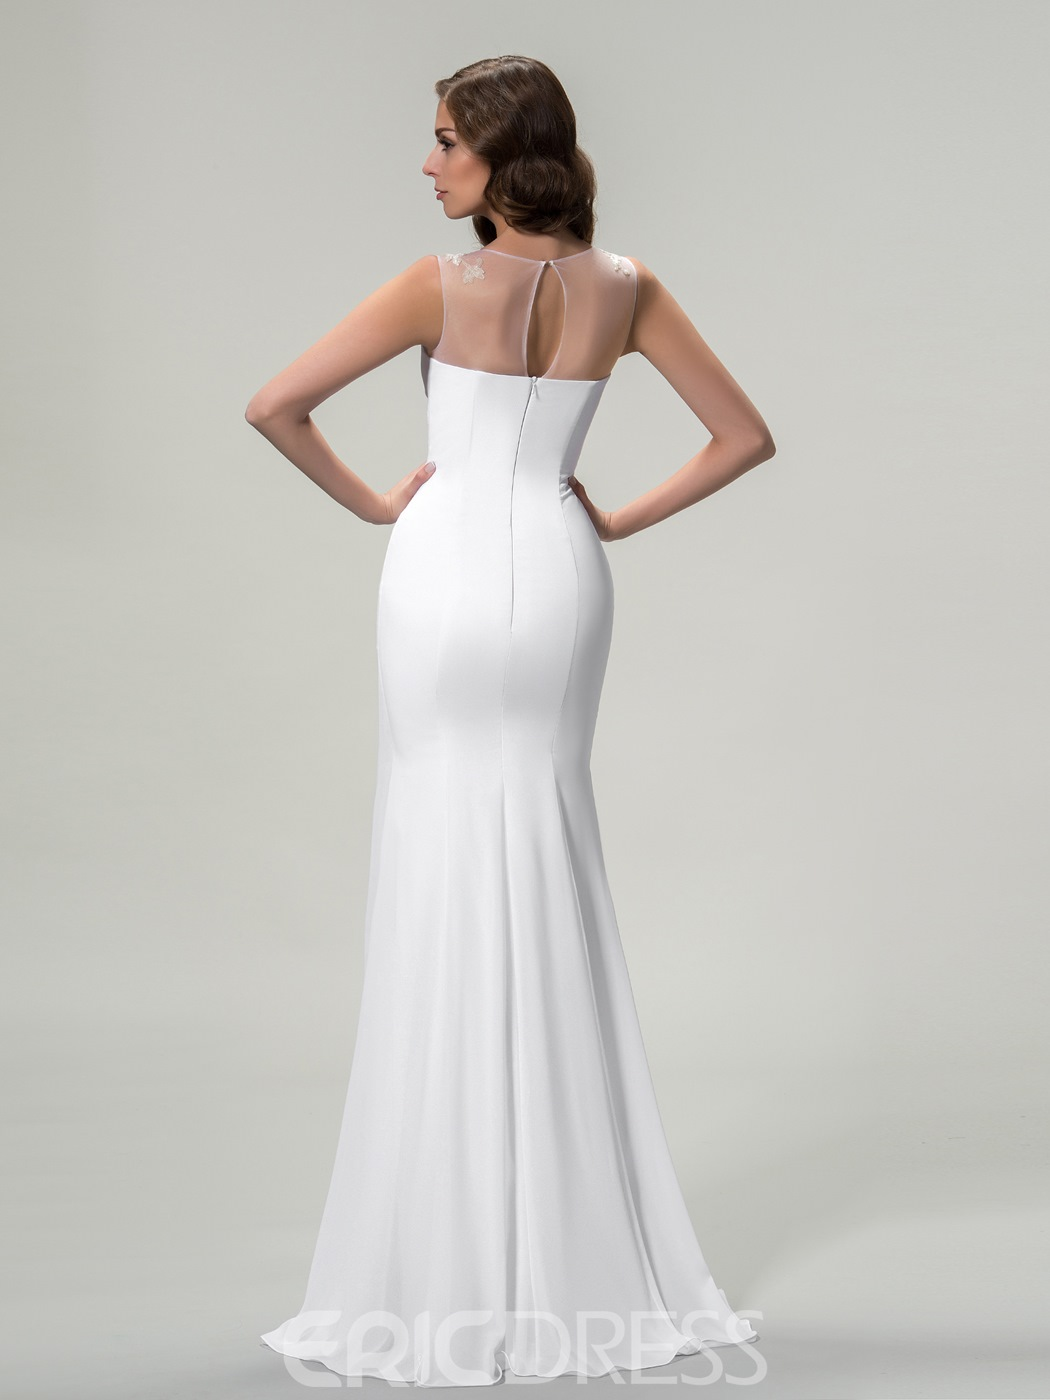 Awesome Jewel Neck Sleeveless Appliques Sheath Long Evening Dress